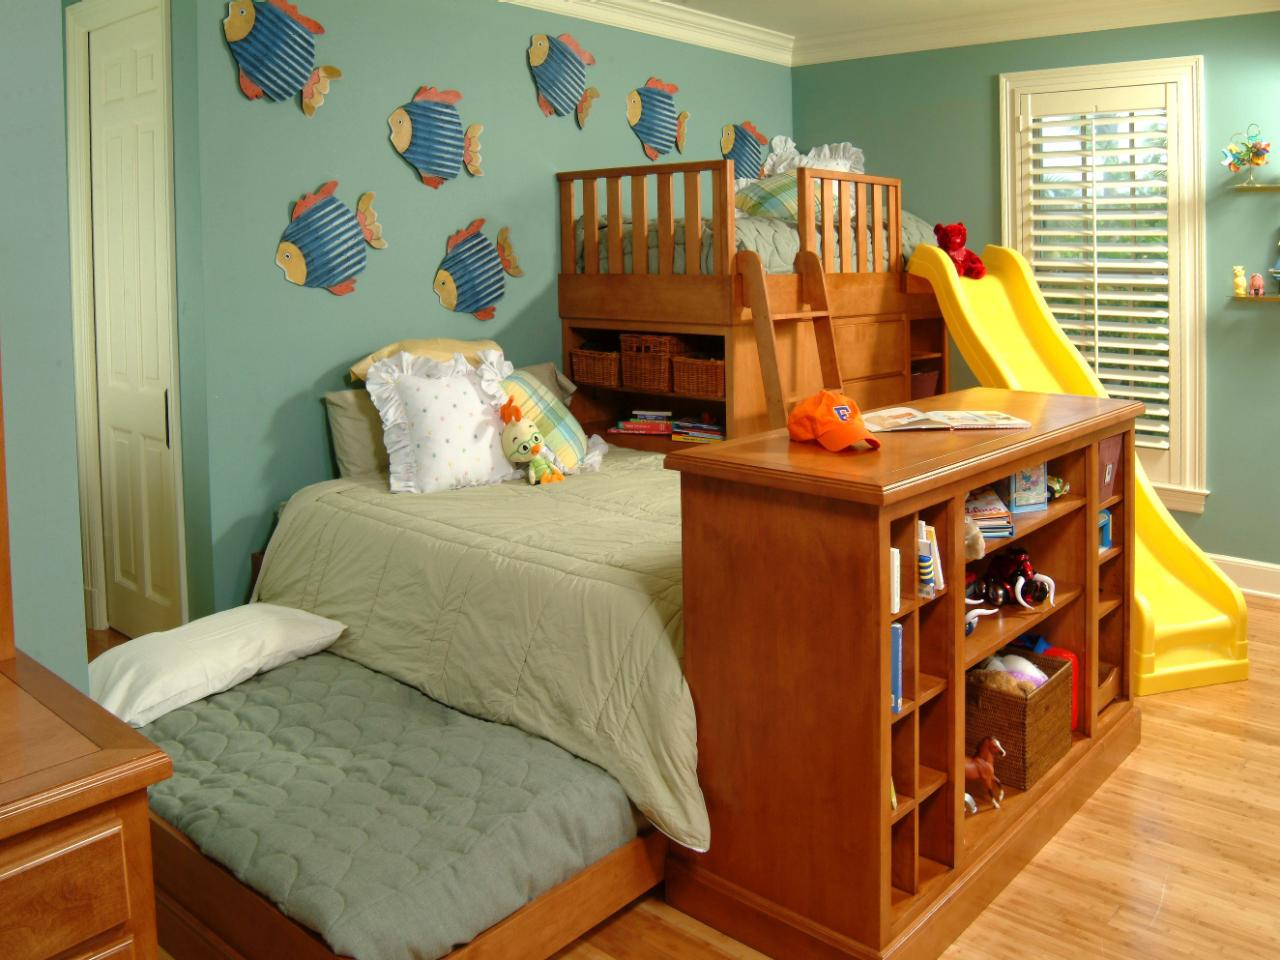 Organizing storage tips for the pint size set kids Small room organization